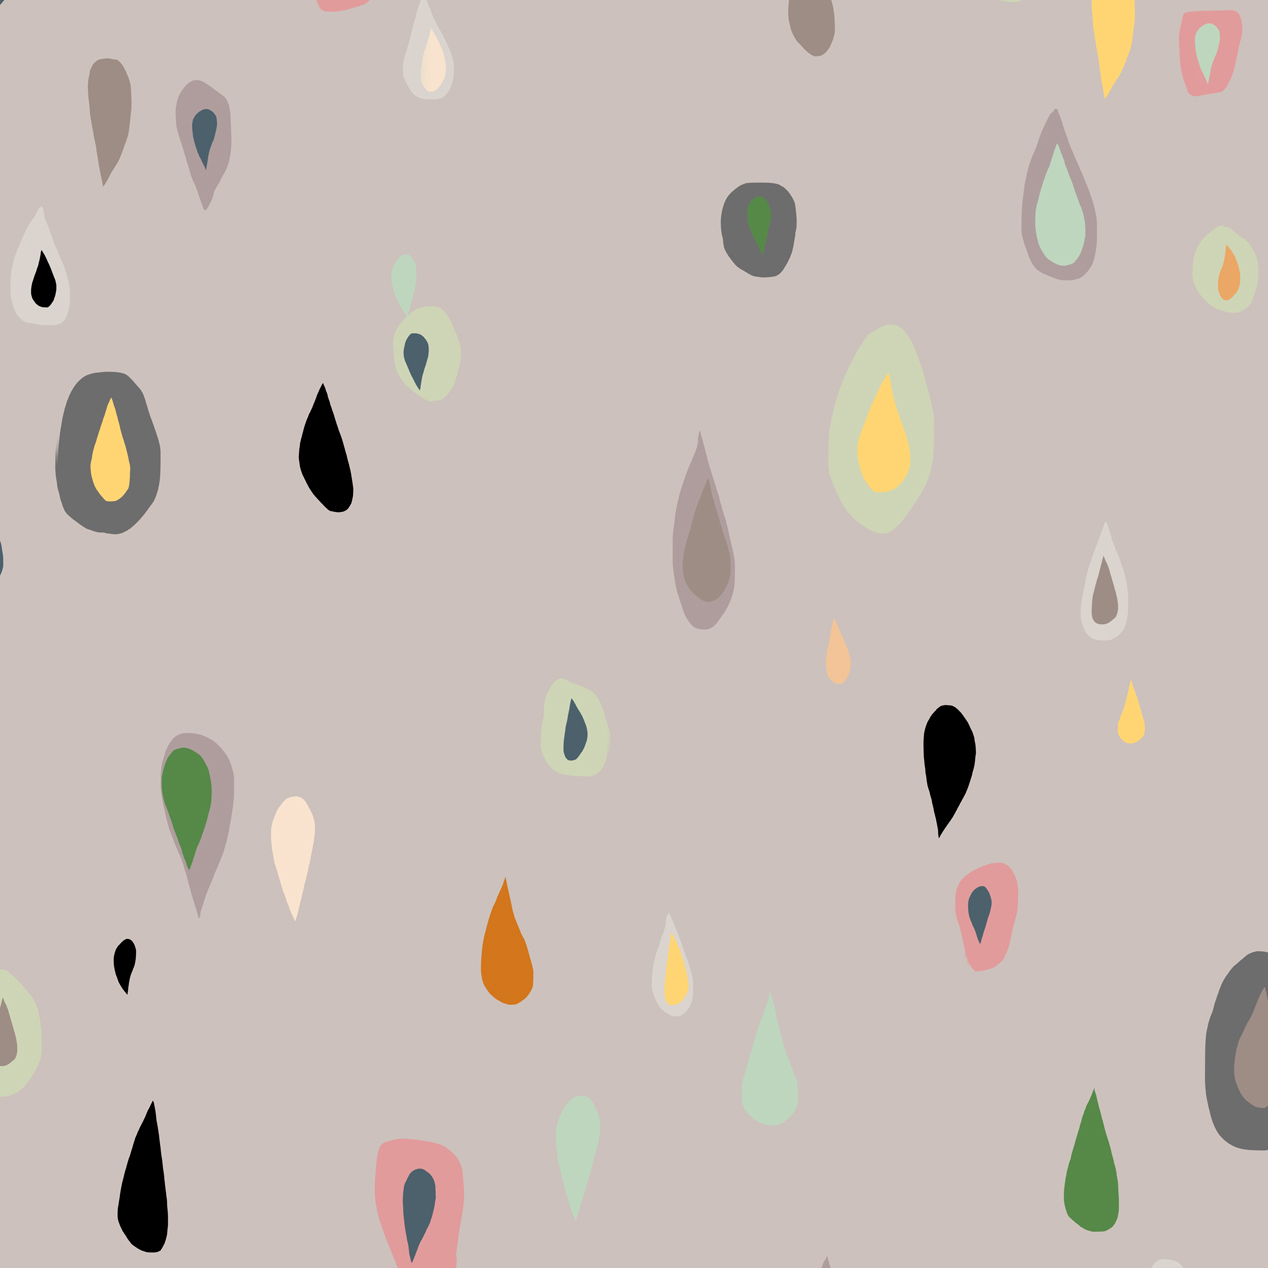 melissa-boardman-abstract-rain-pattern-.jpg